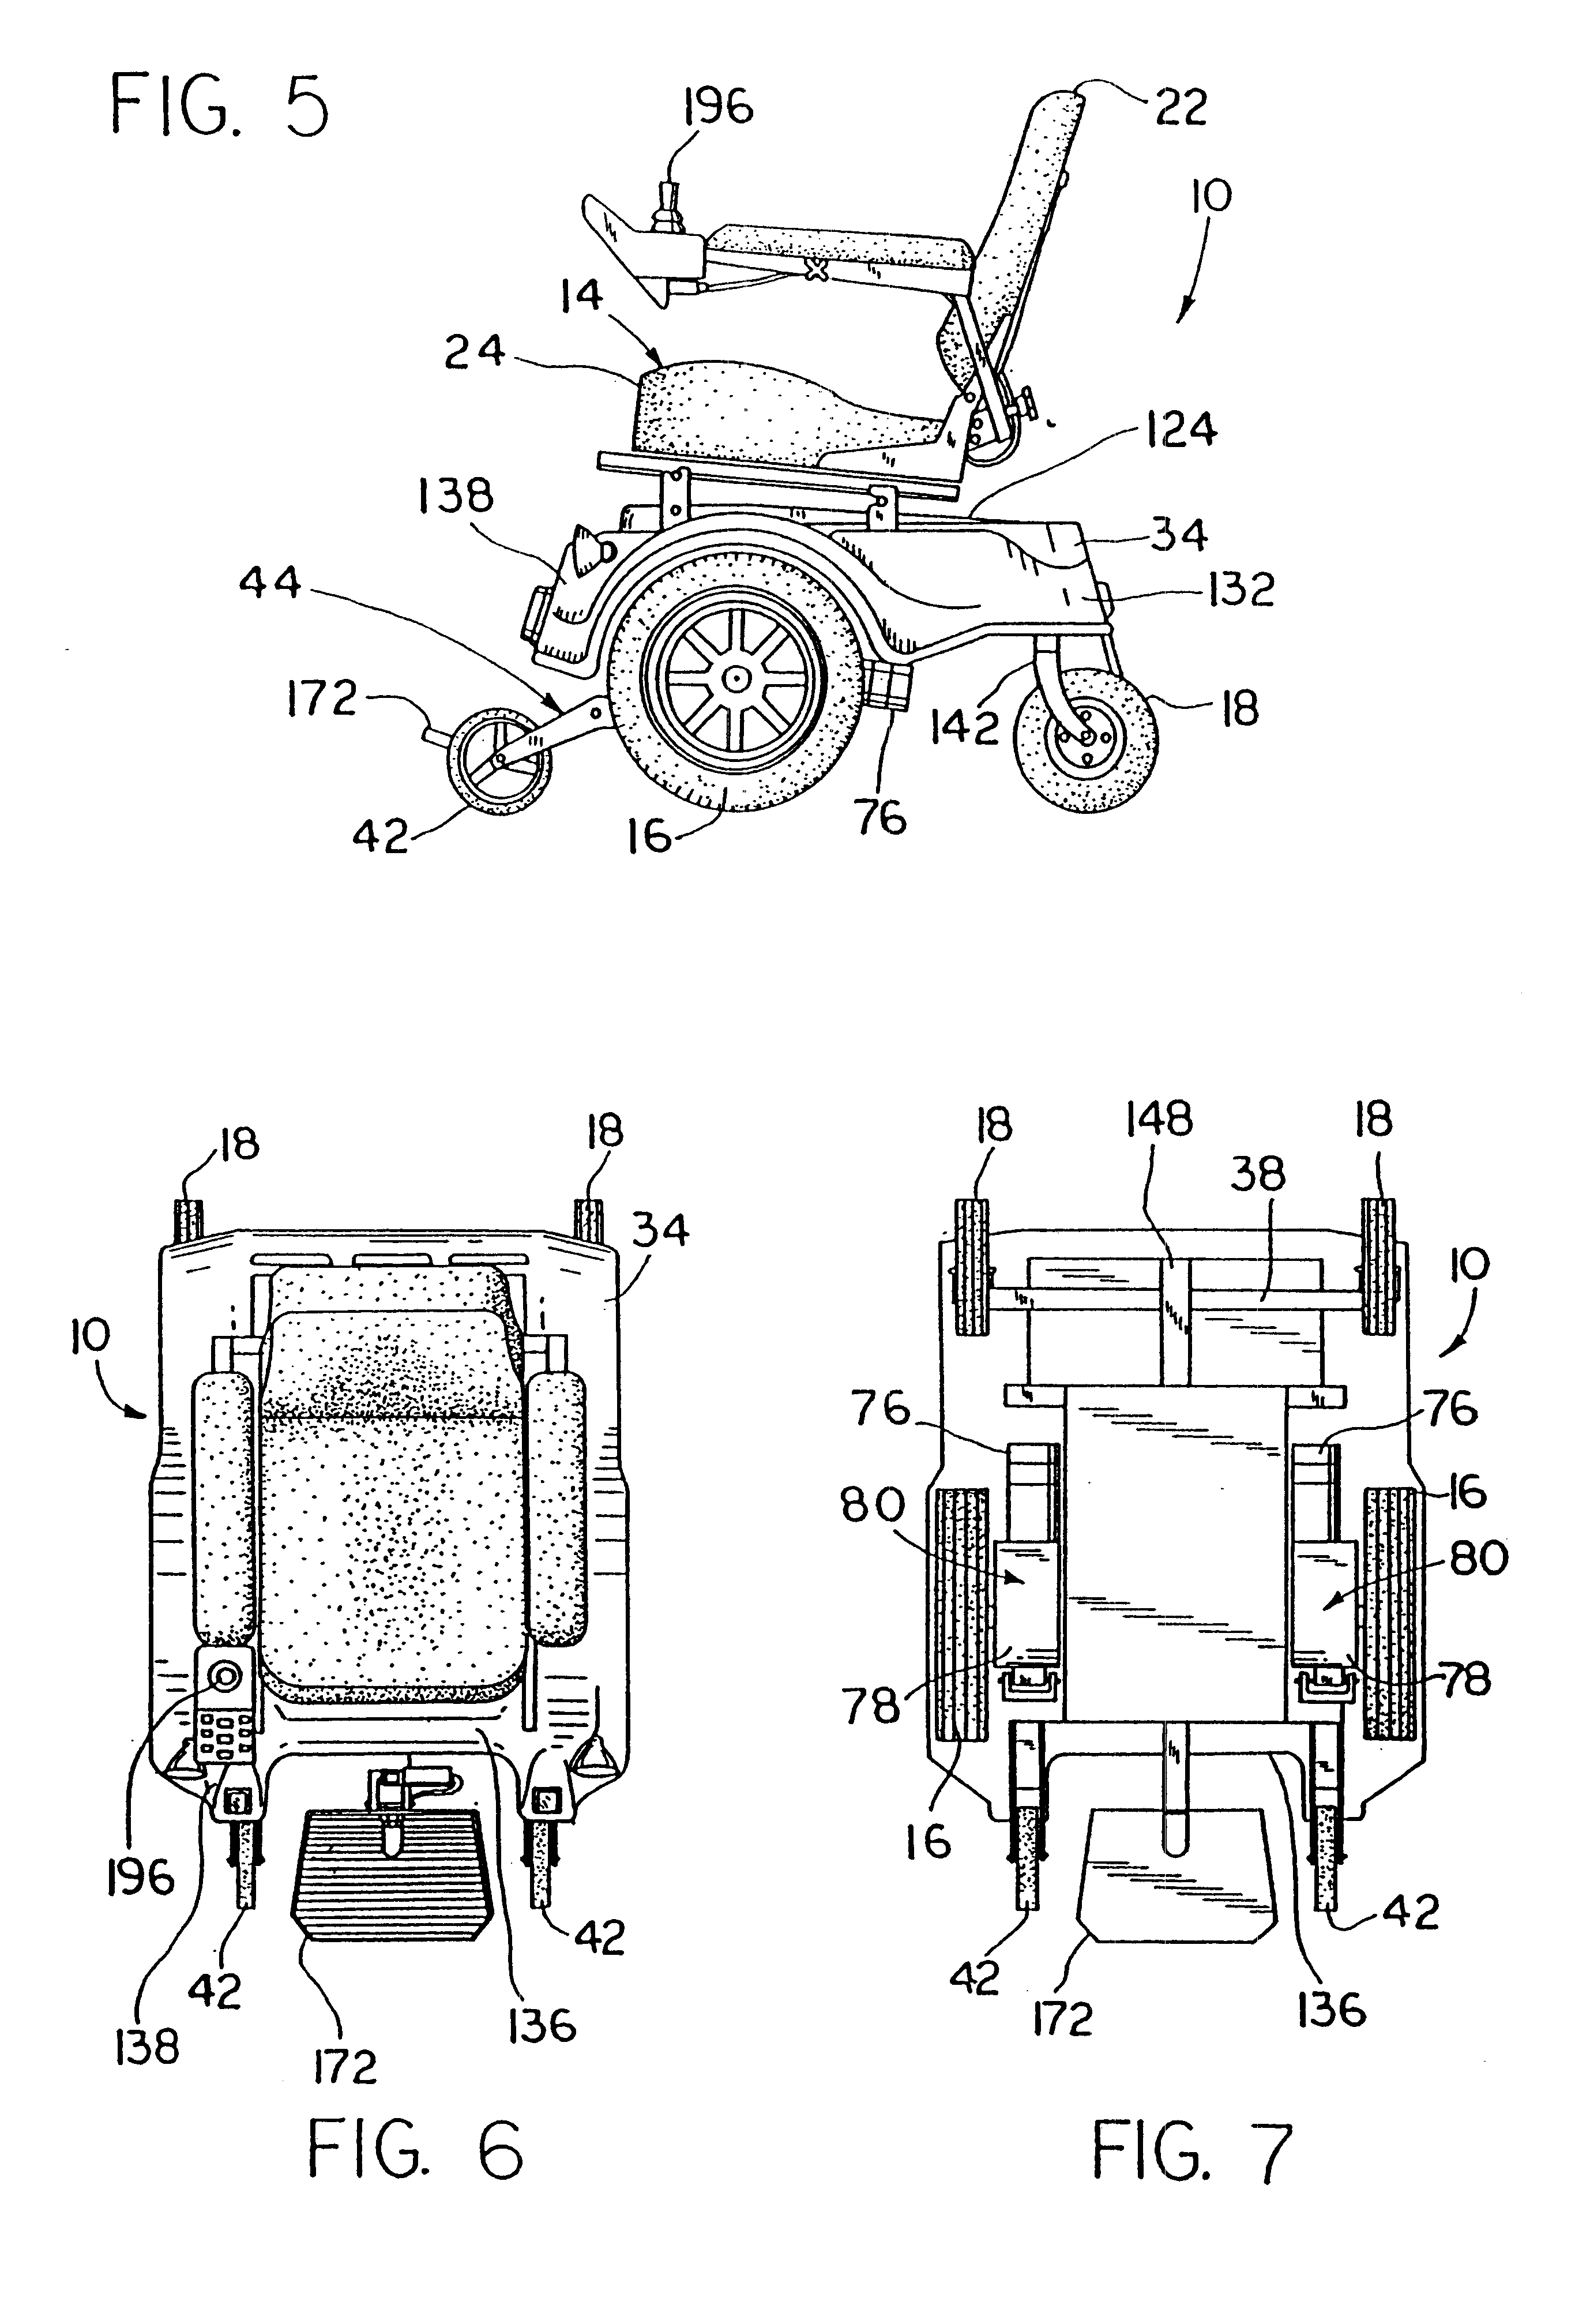 Dental Chair A8000 IIB in addition Jet 3 Ultra Wiring Diagram together with US20120256468 further US6640916 besides Electric Recliner Wiring Diagram. on power chair motor